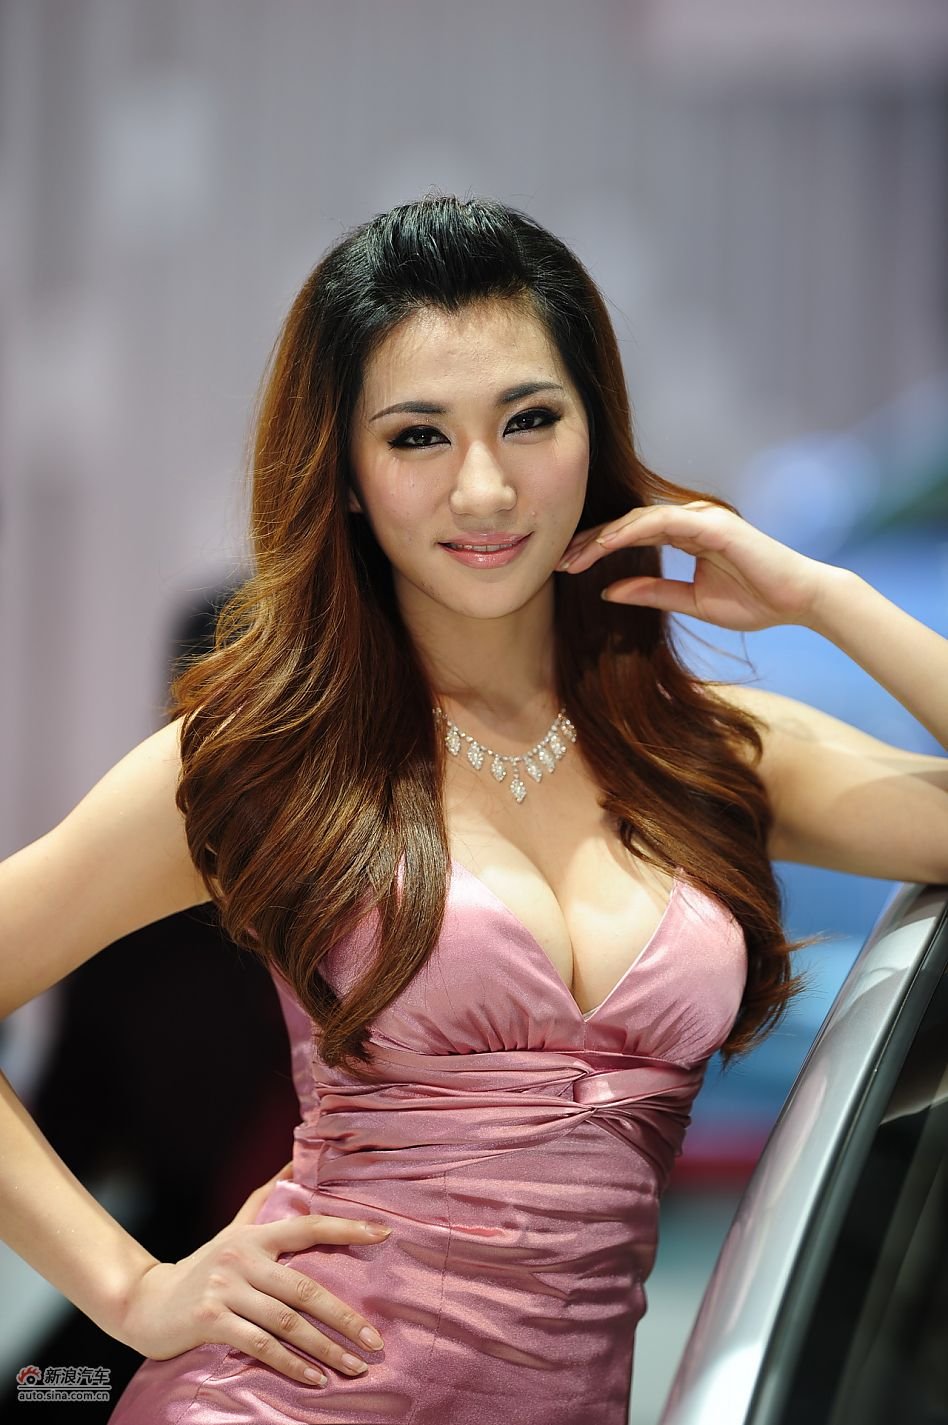 Model poses for Changan PSA at Auto Shanghai 2011, the 14th Shanghai International Automobile Industry Exhibition, which opens in the city's new International Expo Center from April 19-28. [Sina]